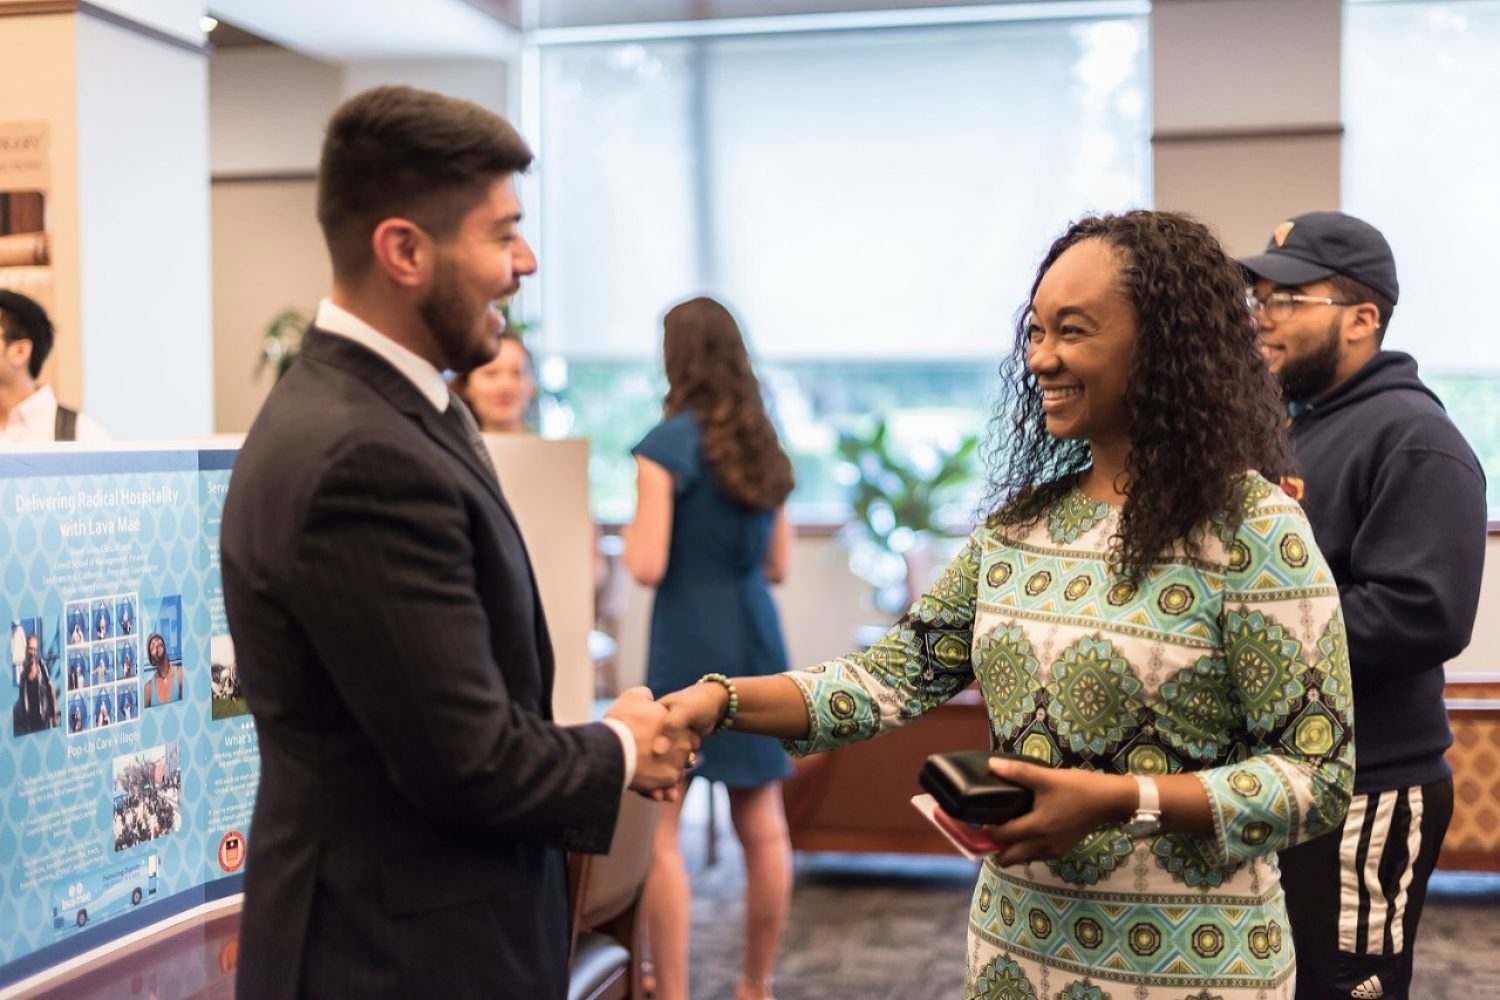 Thea Bowman AHANA and Intercultural Center Director Ines Maturana Sendoya congratulated David Jasso '20 at a presentation/reception event for participants in the Eagle Intern Fellowship Program. (Photo by Yiting Chen)